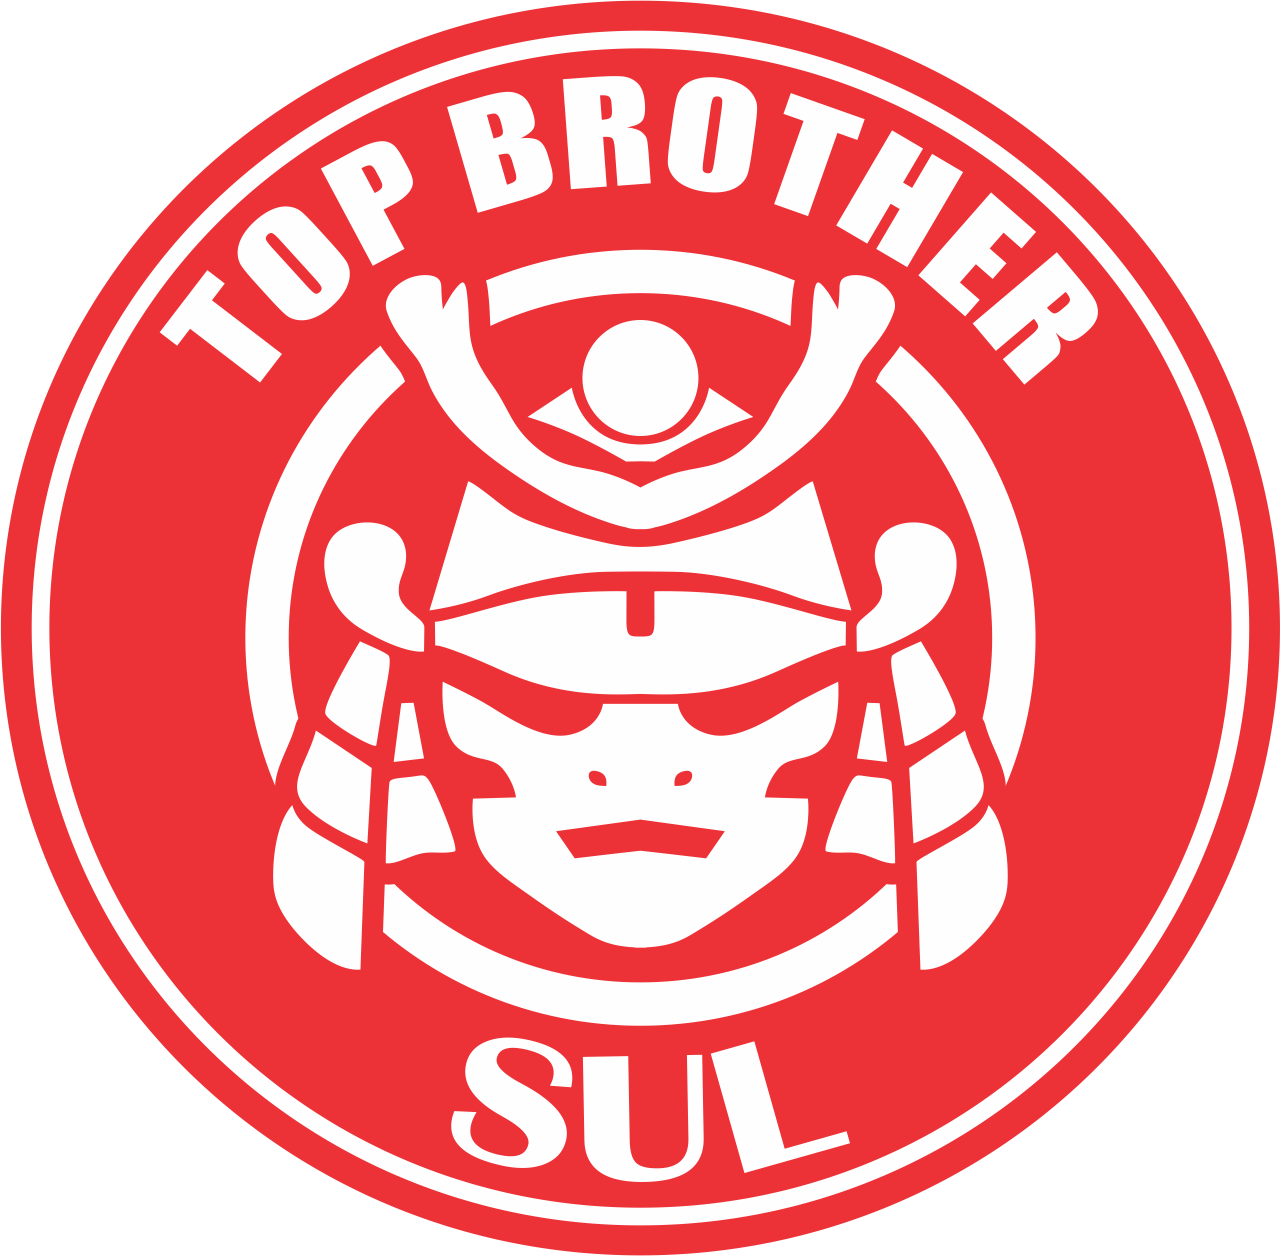 Top Brother Sul